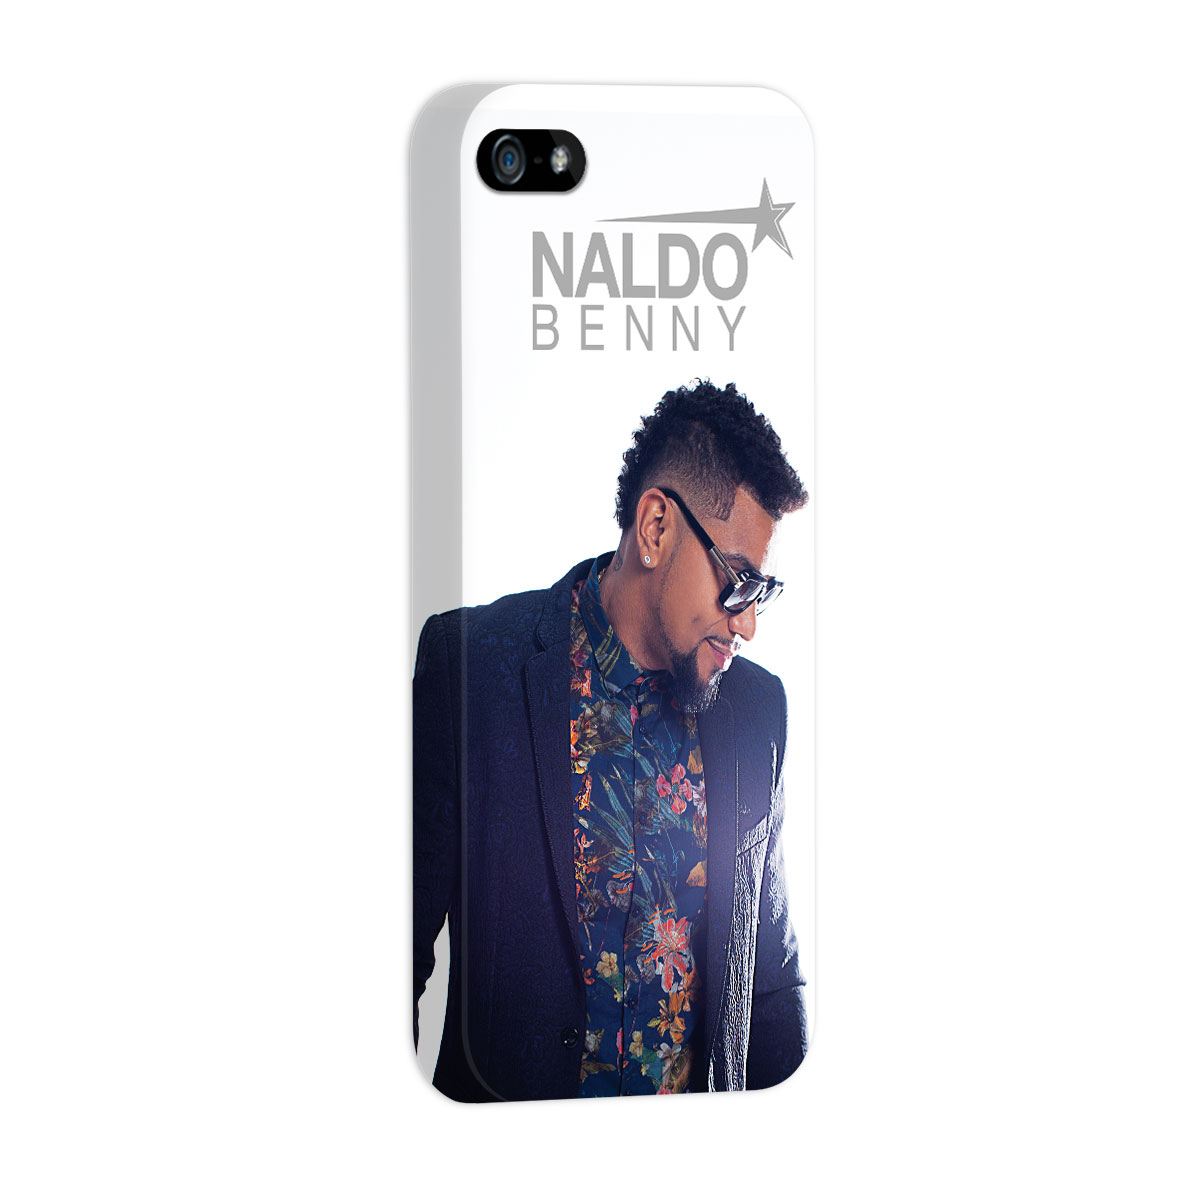 Capa para iPhone 5/5S Naldo Benny Photo